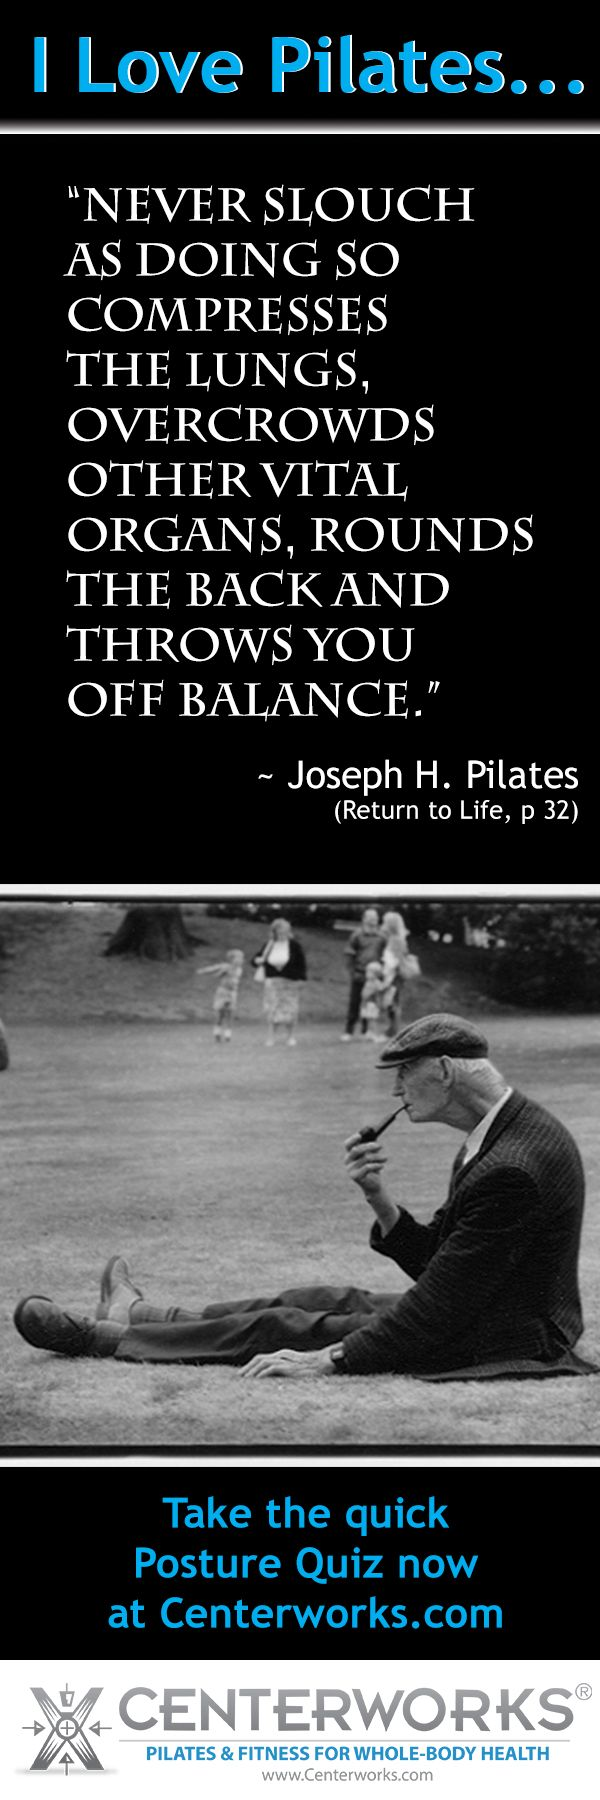 """Pilates Quotes: """"Never slouch, as doing so compresses the lungs, overcrowds other vital organs, rounds the back, and throws you off balance.""""  ~ Joseph H. Pilates"""